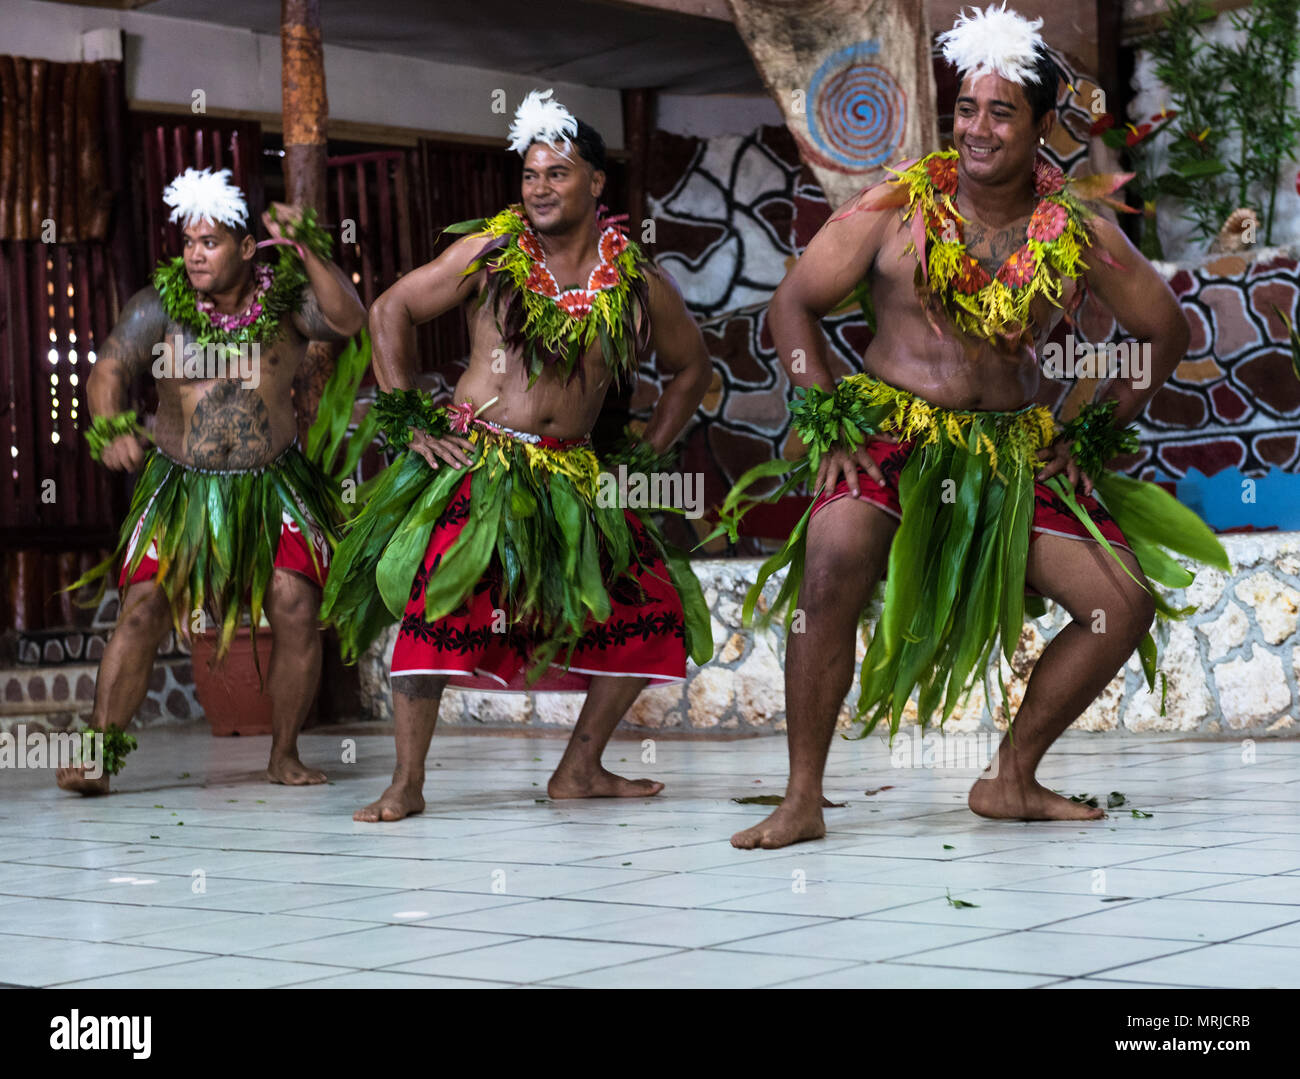 Nuku'Alofa, Tonga -- March 10, 2018. Dancers in native garb perform a traditional Tonganese dance. Editorial Use Only. - Stock Image